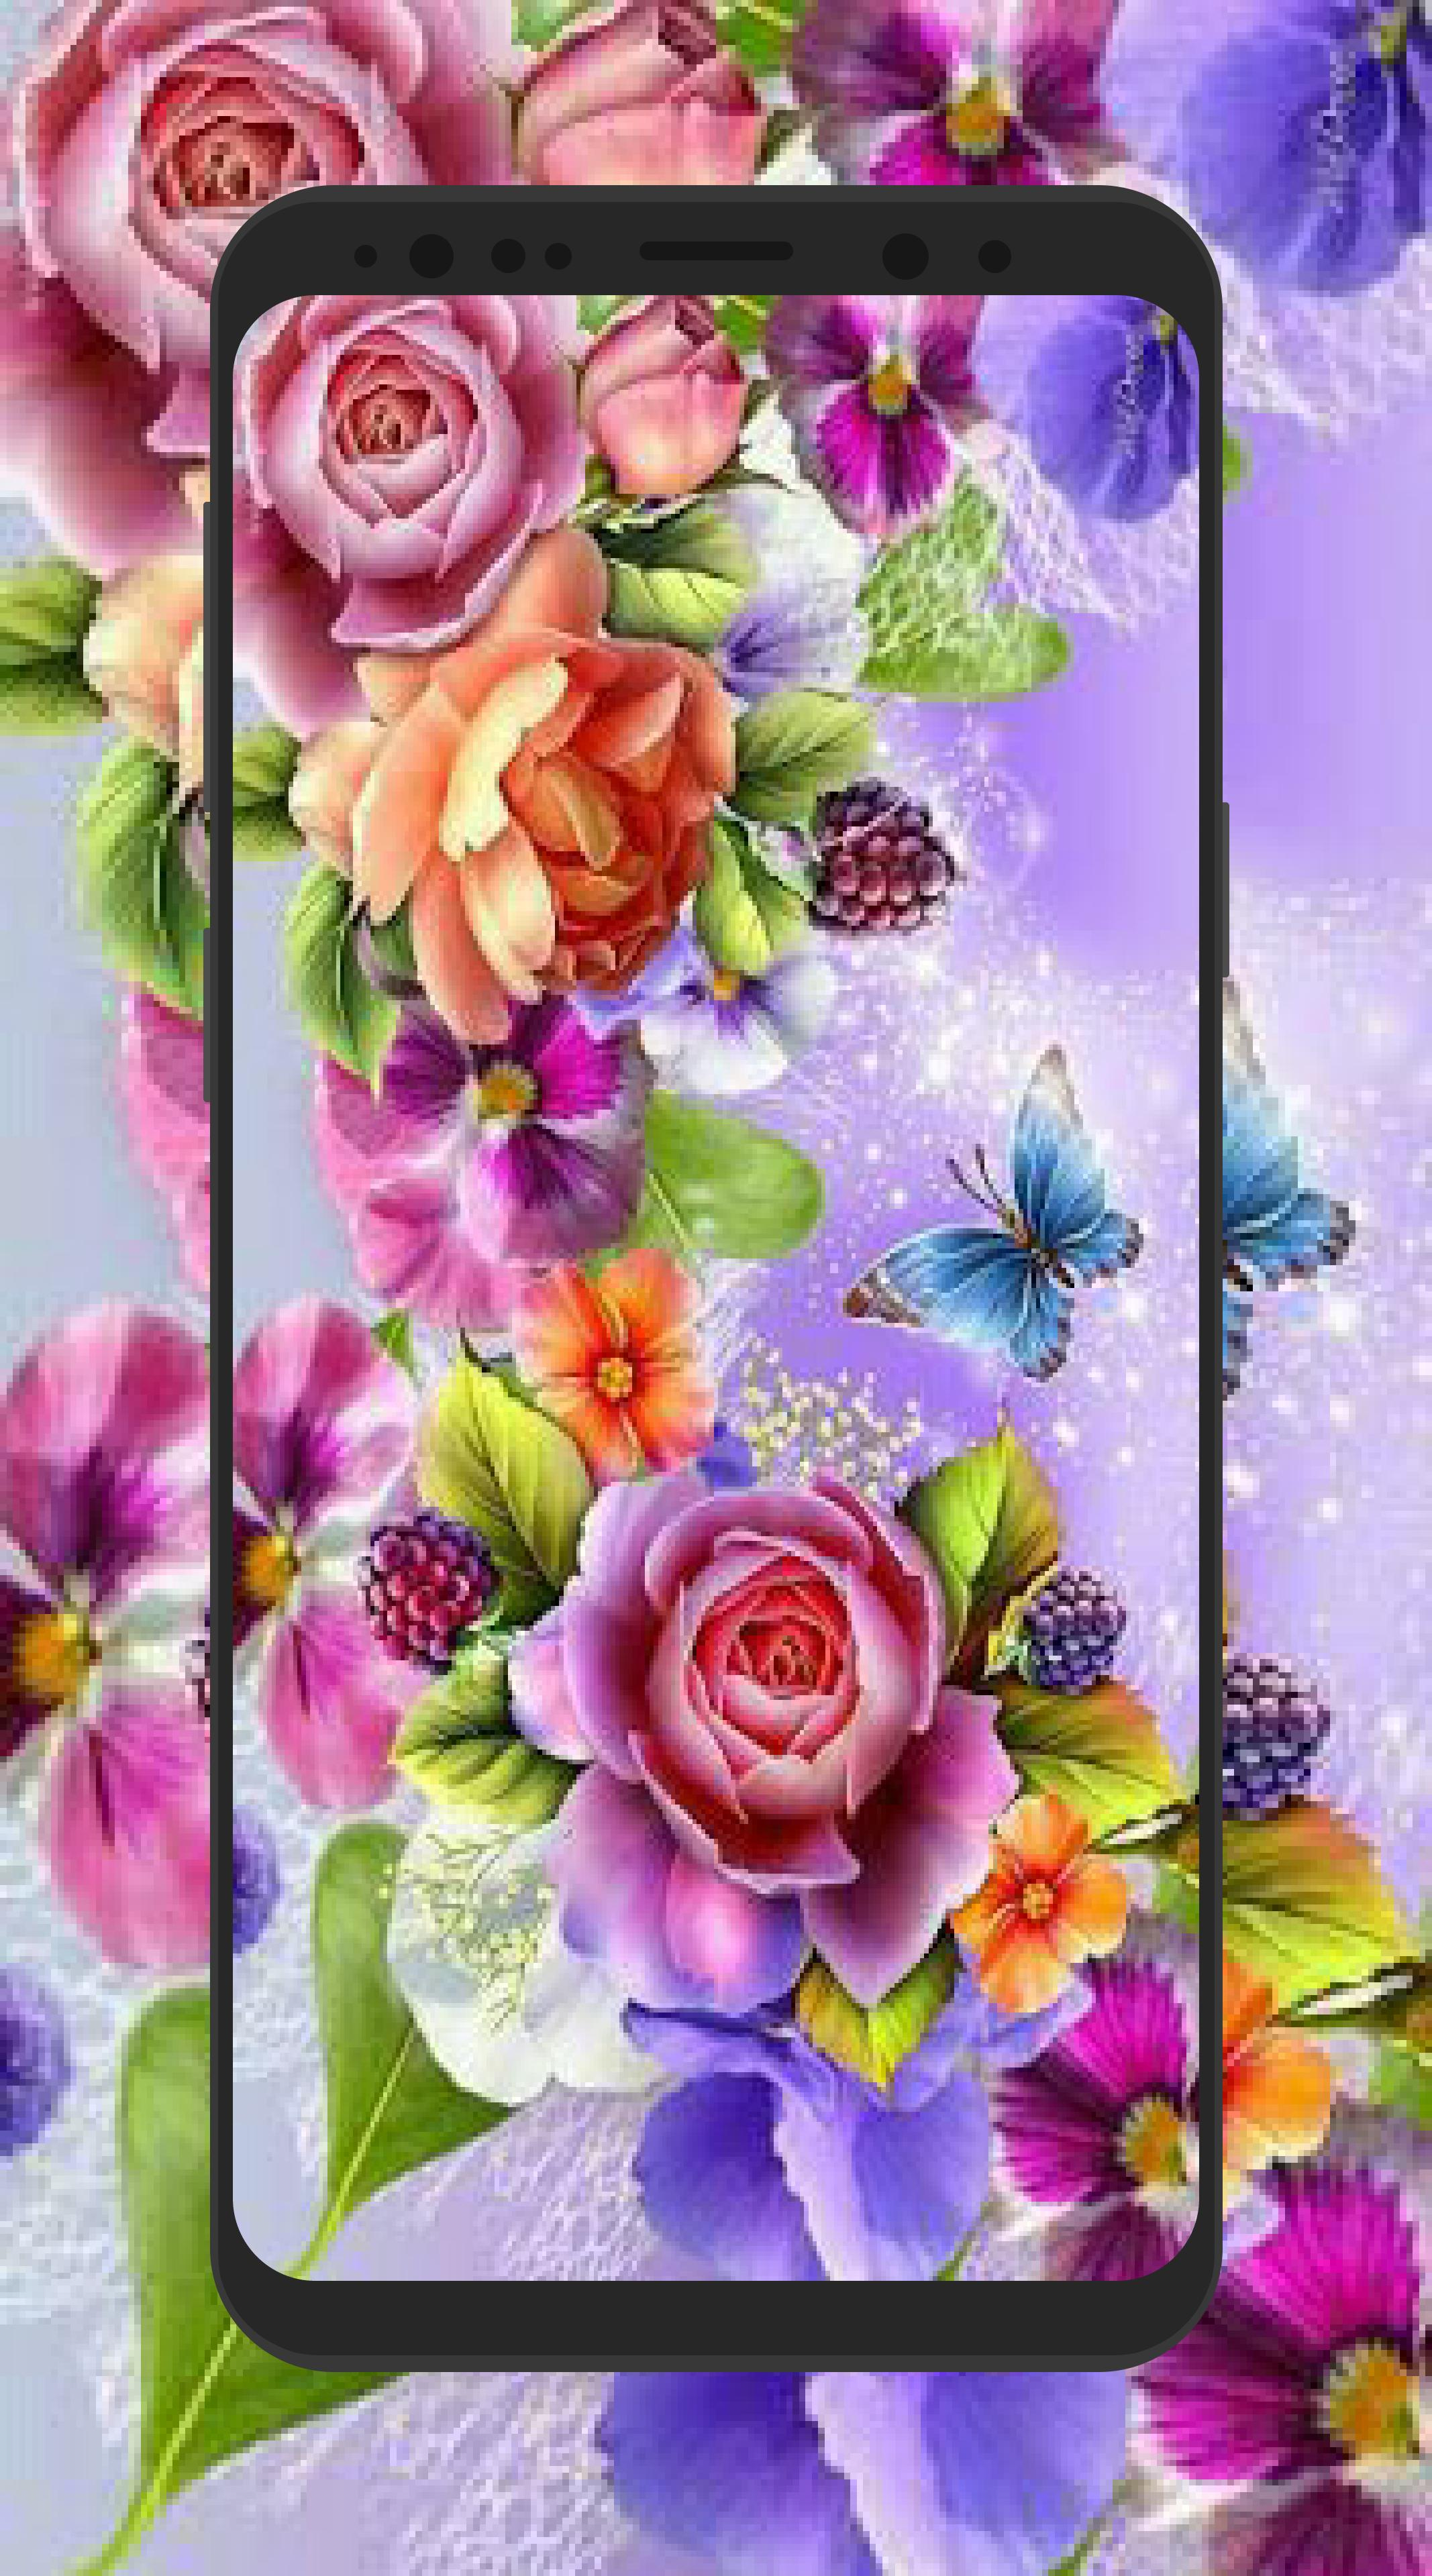 Hd 3d Flower Wallpapers 4k Background For Android Apk Download